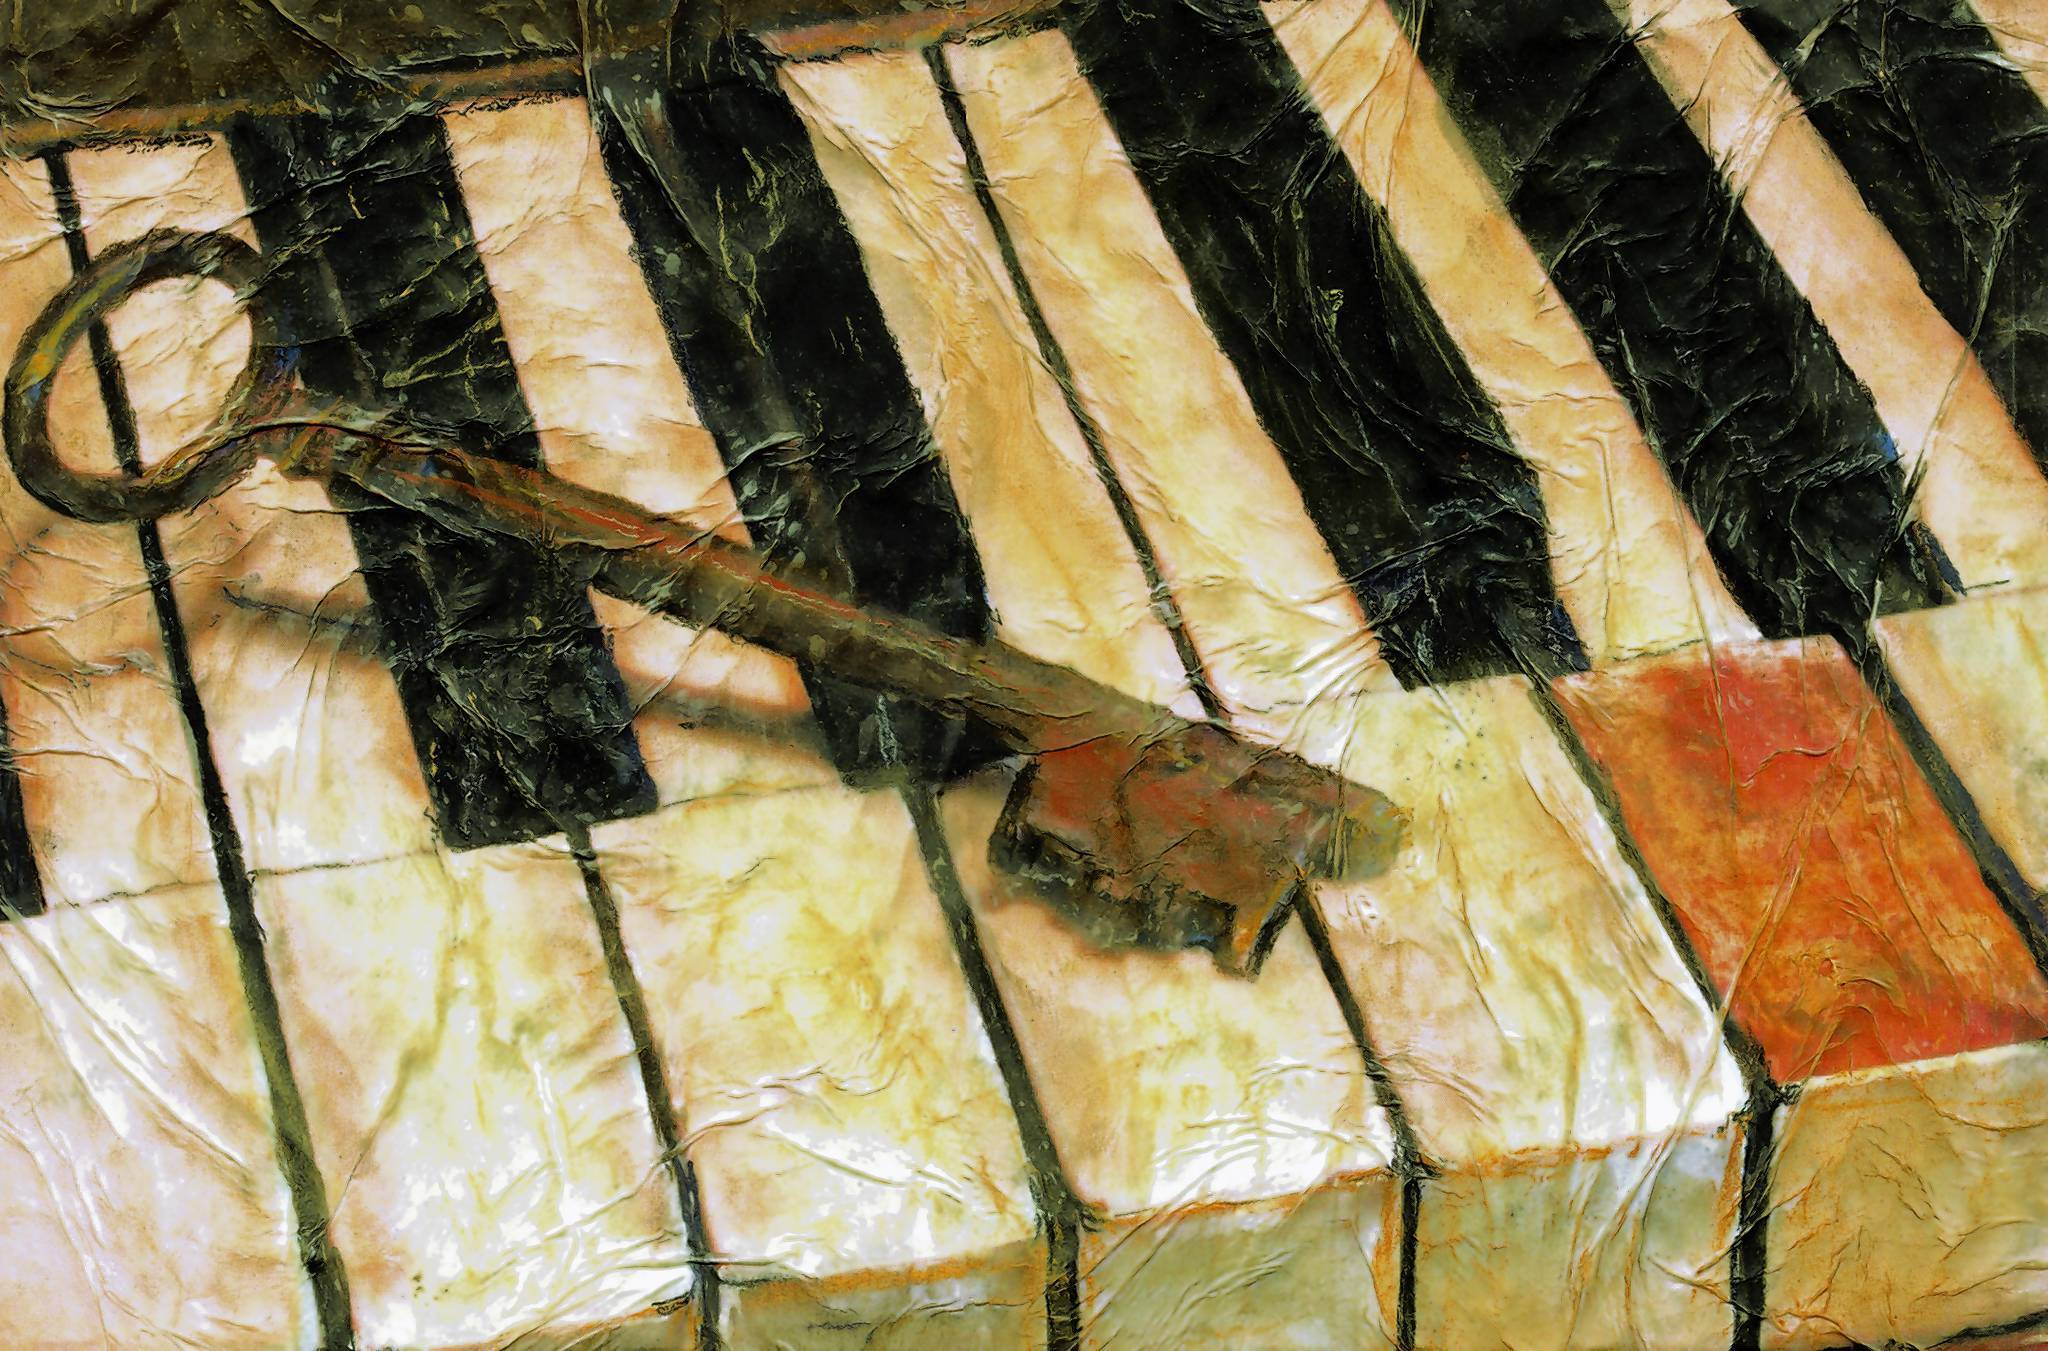 &quot;Old Keys,&quot; by painter Cheryl Jones Evans.